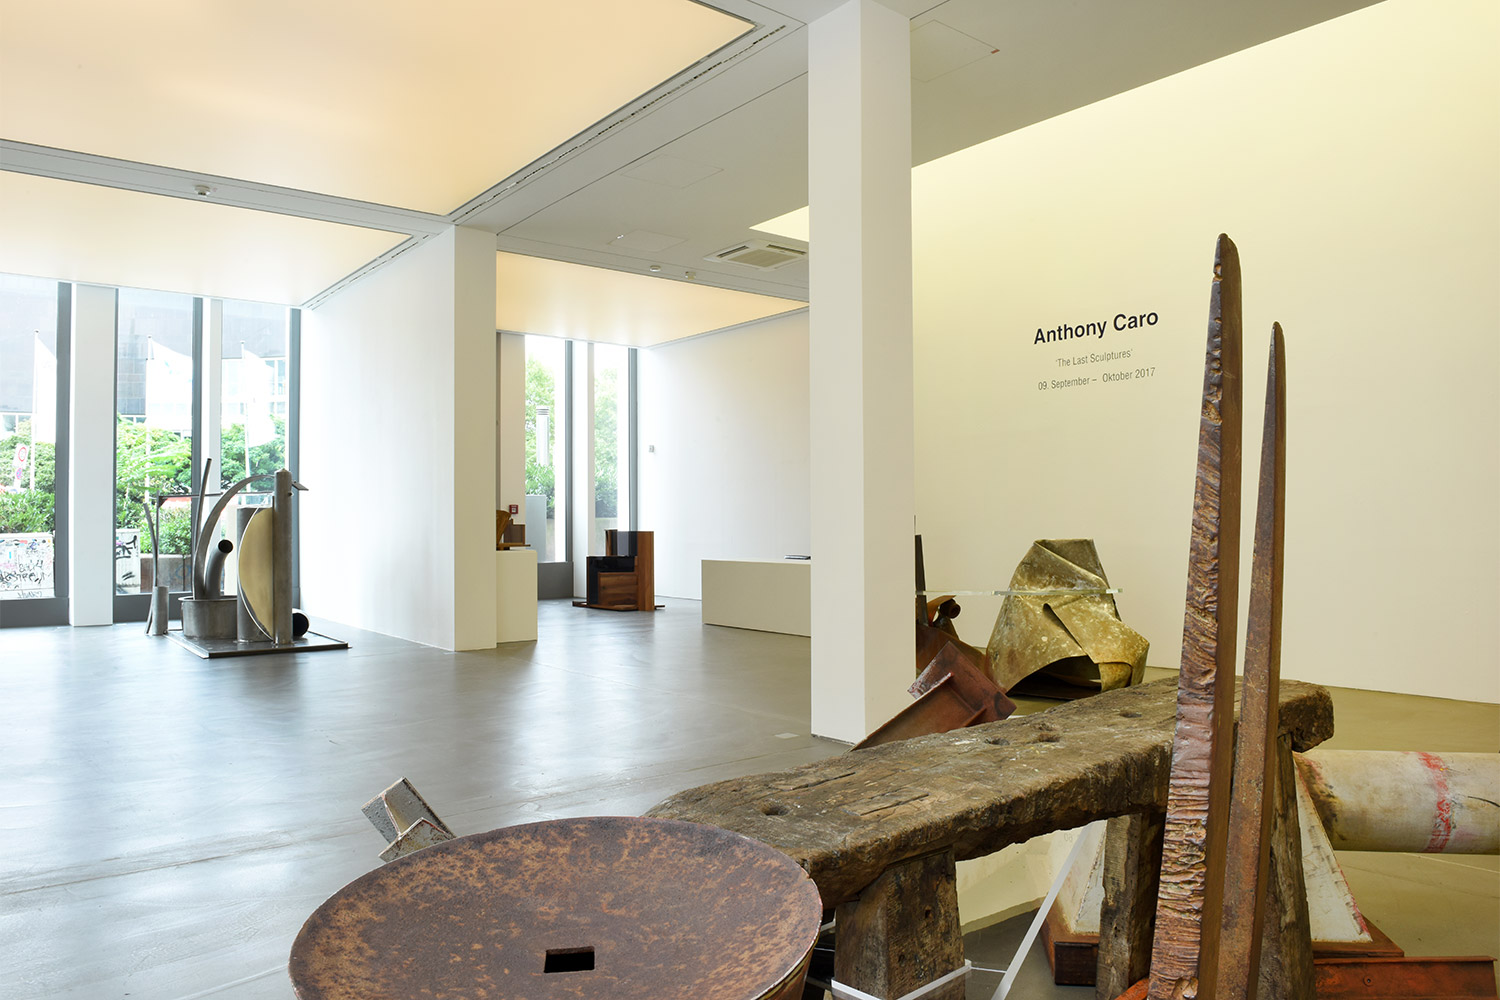 Exhibitions Gallery Hans Mayer Origami Dinosaur Diagrams Claudia39s Room Pinterest Anthony Caro Installation View